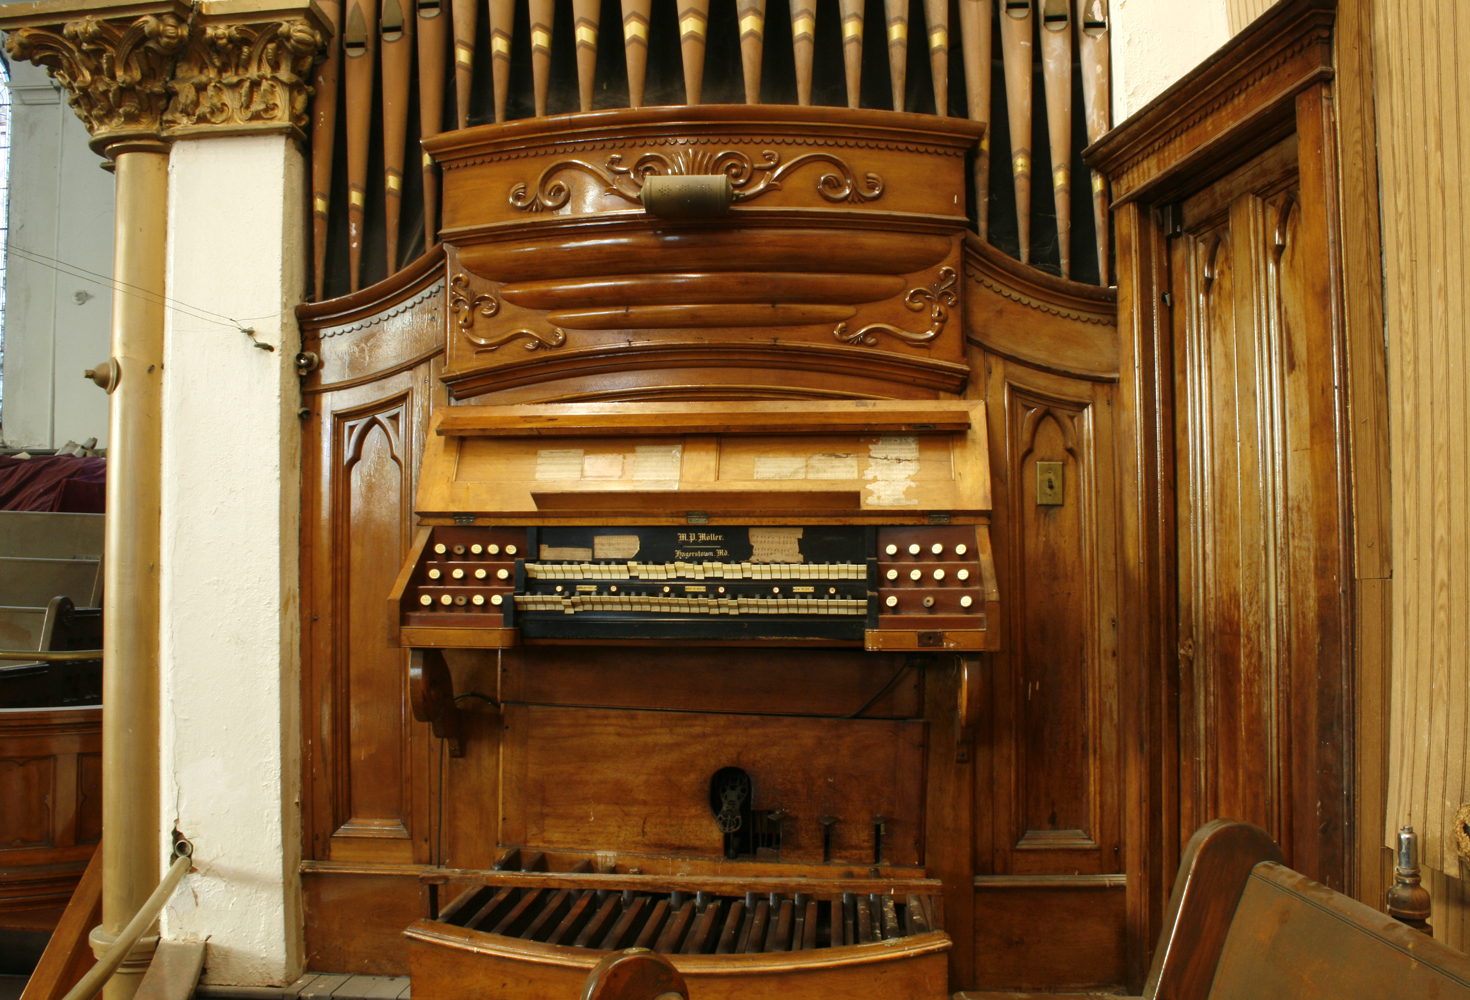 M.P. Möller organ, Op. 213 (1898) in Willis Avenue United Methodist Church - New York City (photo: Steven E. Lawson)